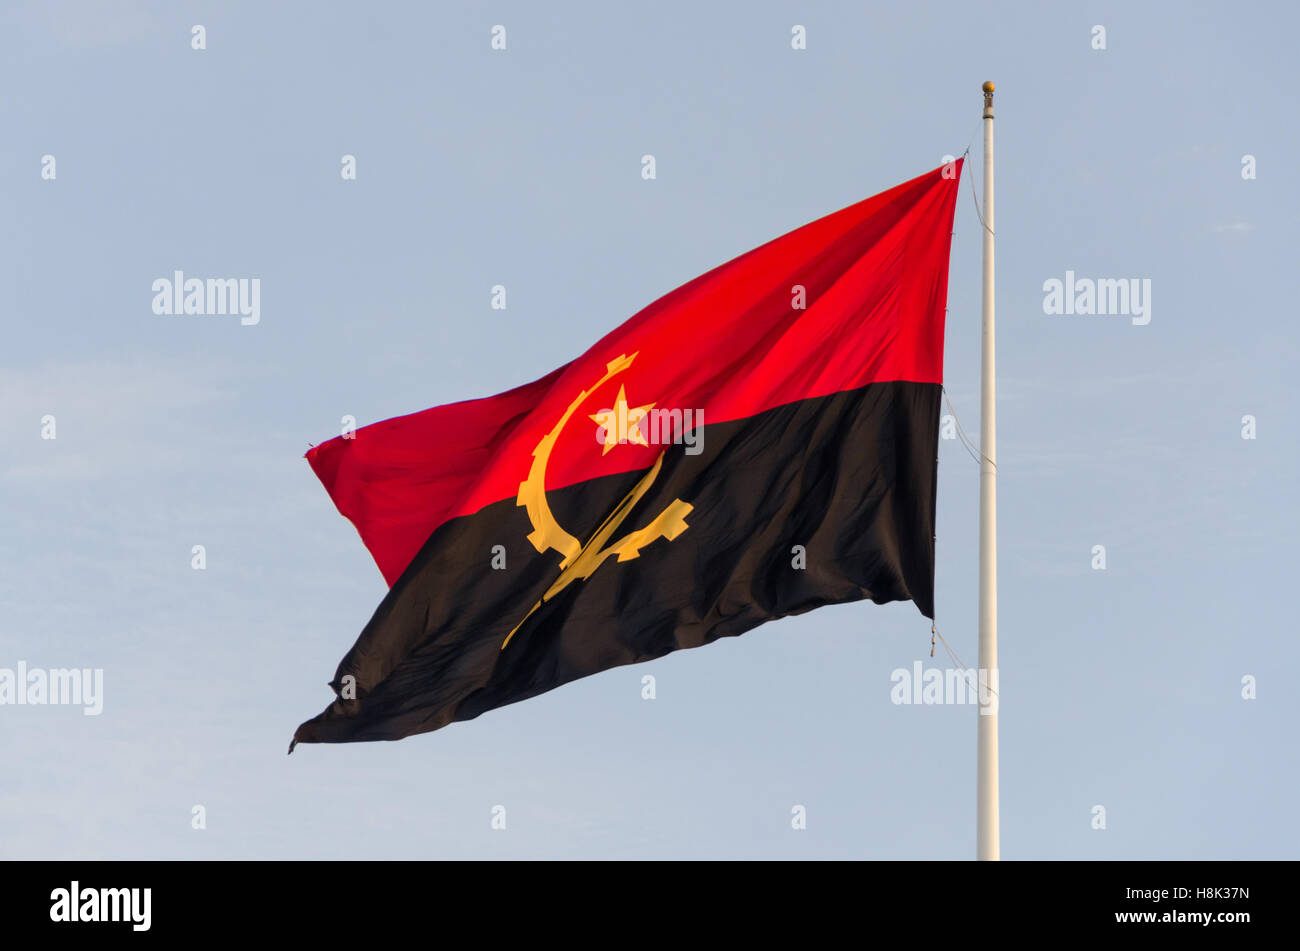 Flag of Angola flying at the Sao Miguel Fortress, Luanda. It is supposed to be one of the tallest flags in Africa. - Stock Image